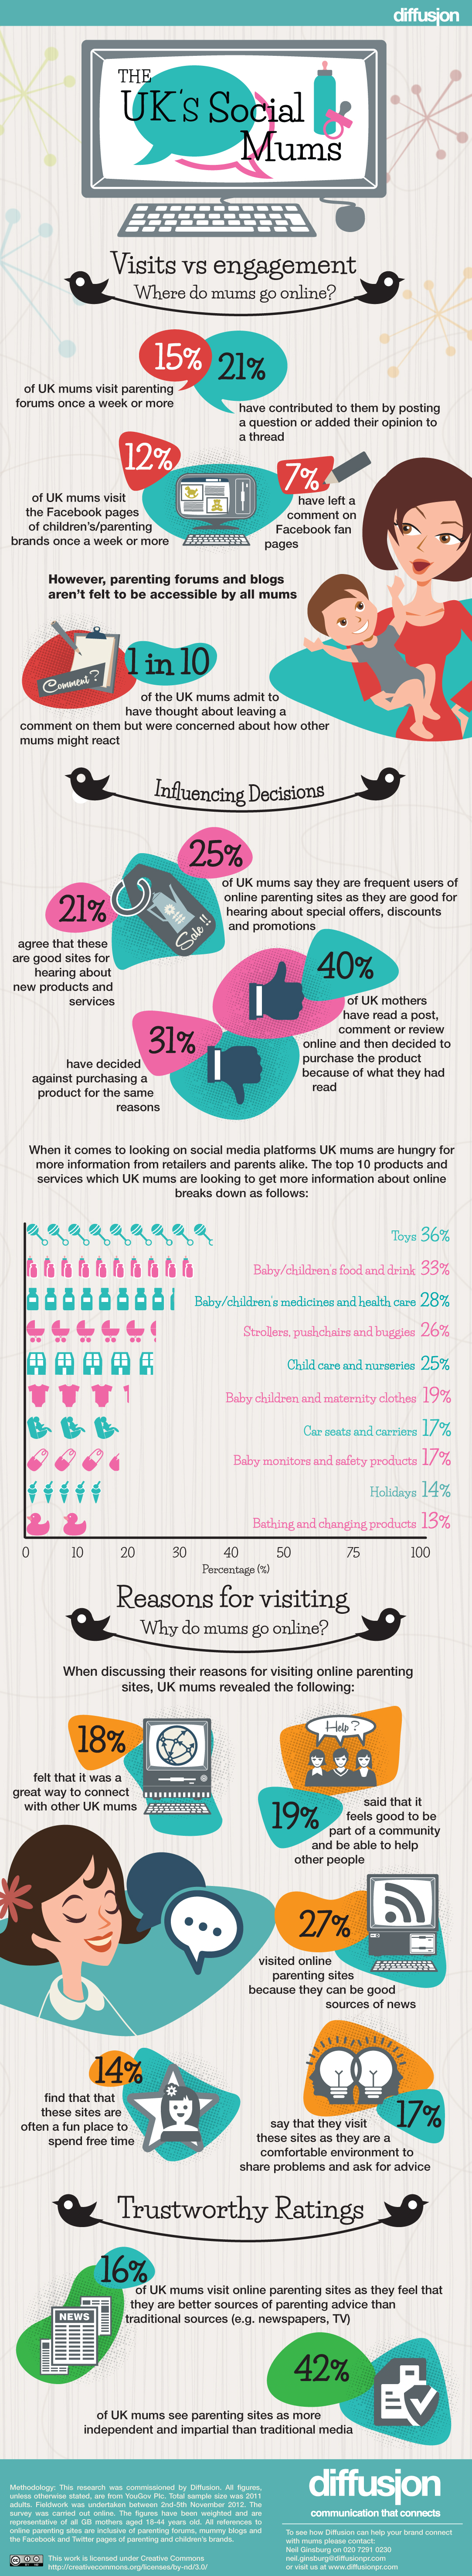 SOCIAL MUMS INFOGRAPHIC ACTUAL SIZE